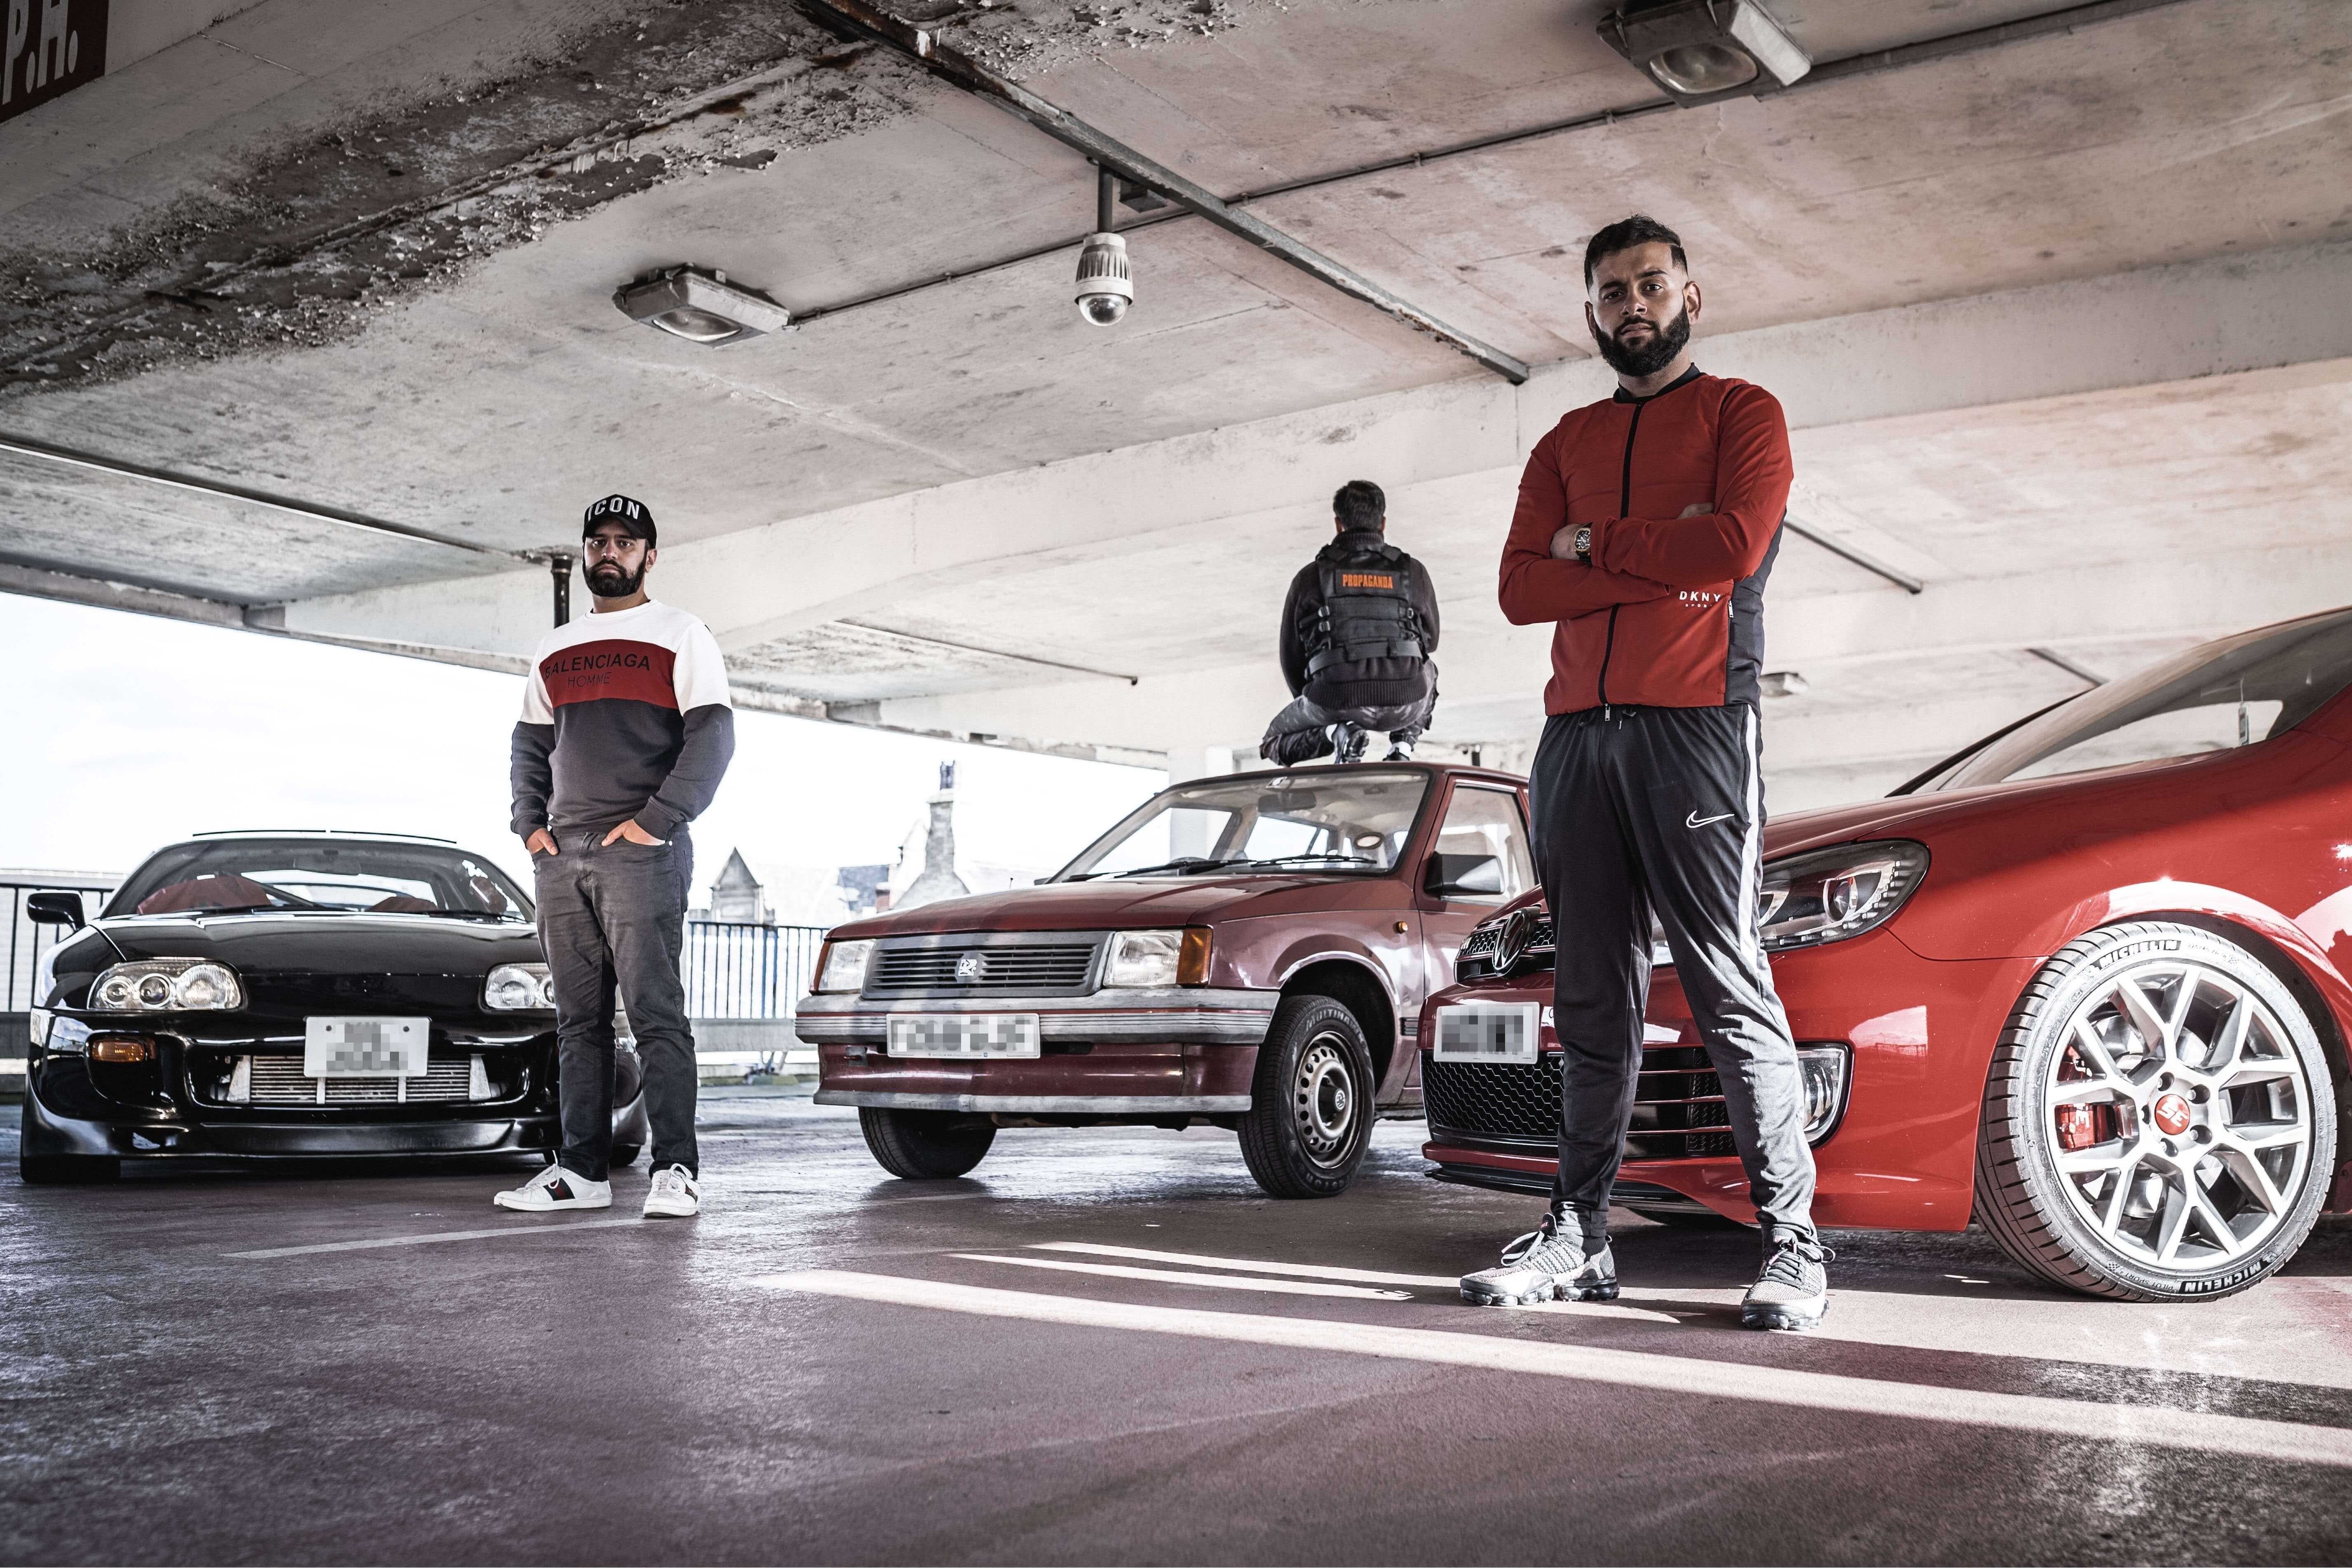 Peaceophobia: a new Bradford play about Muslim men and cars